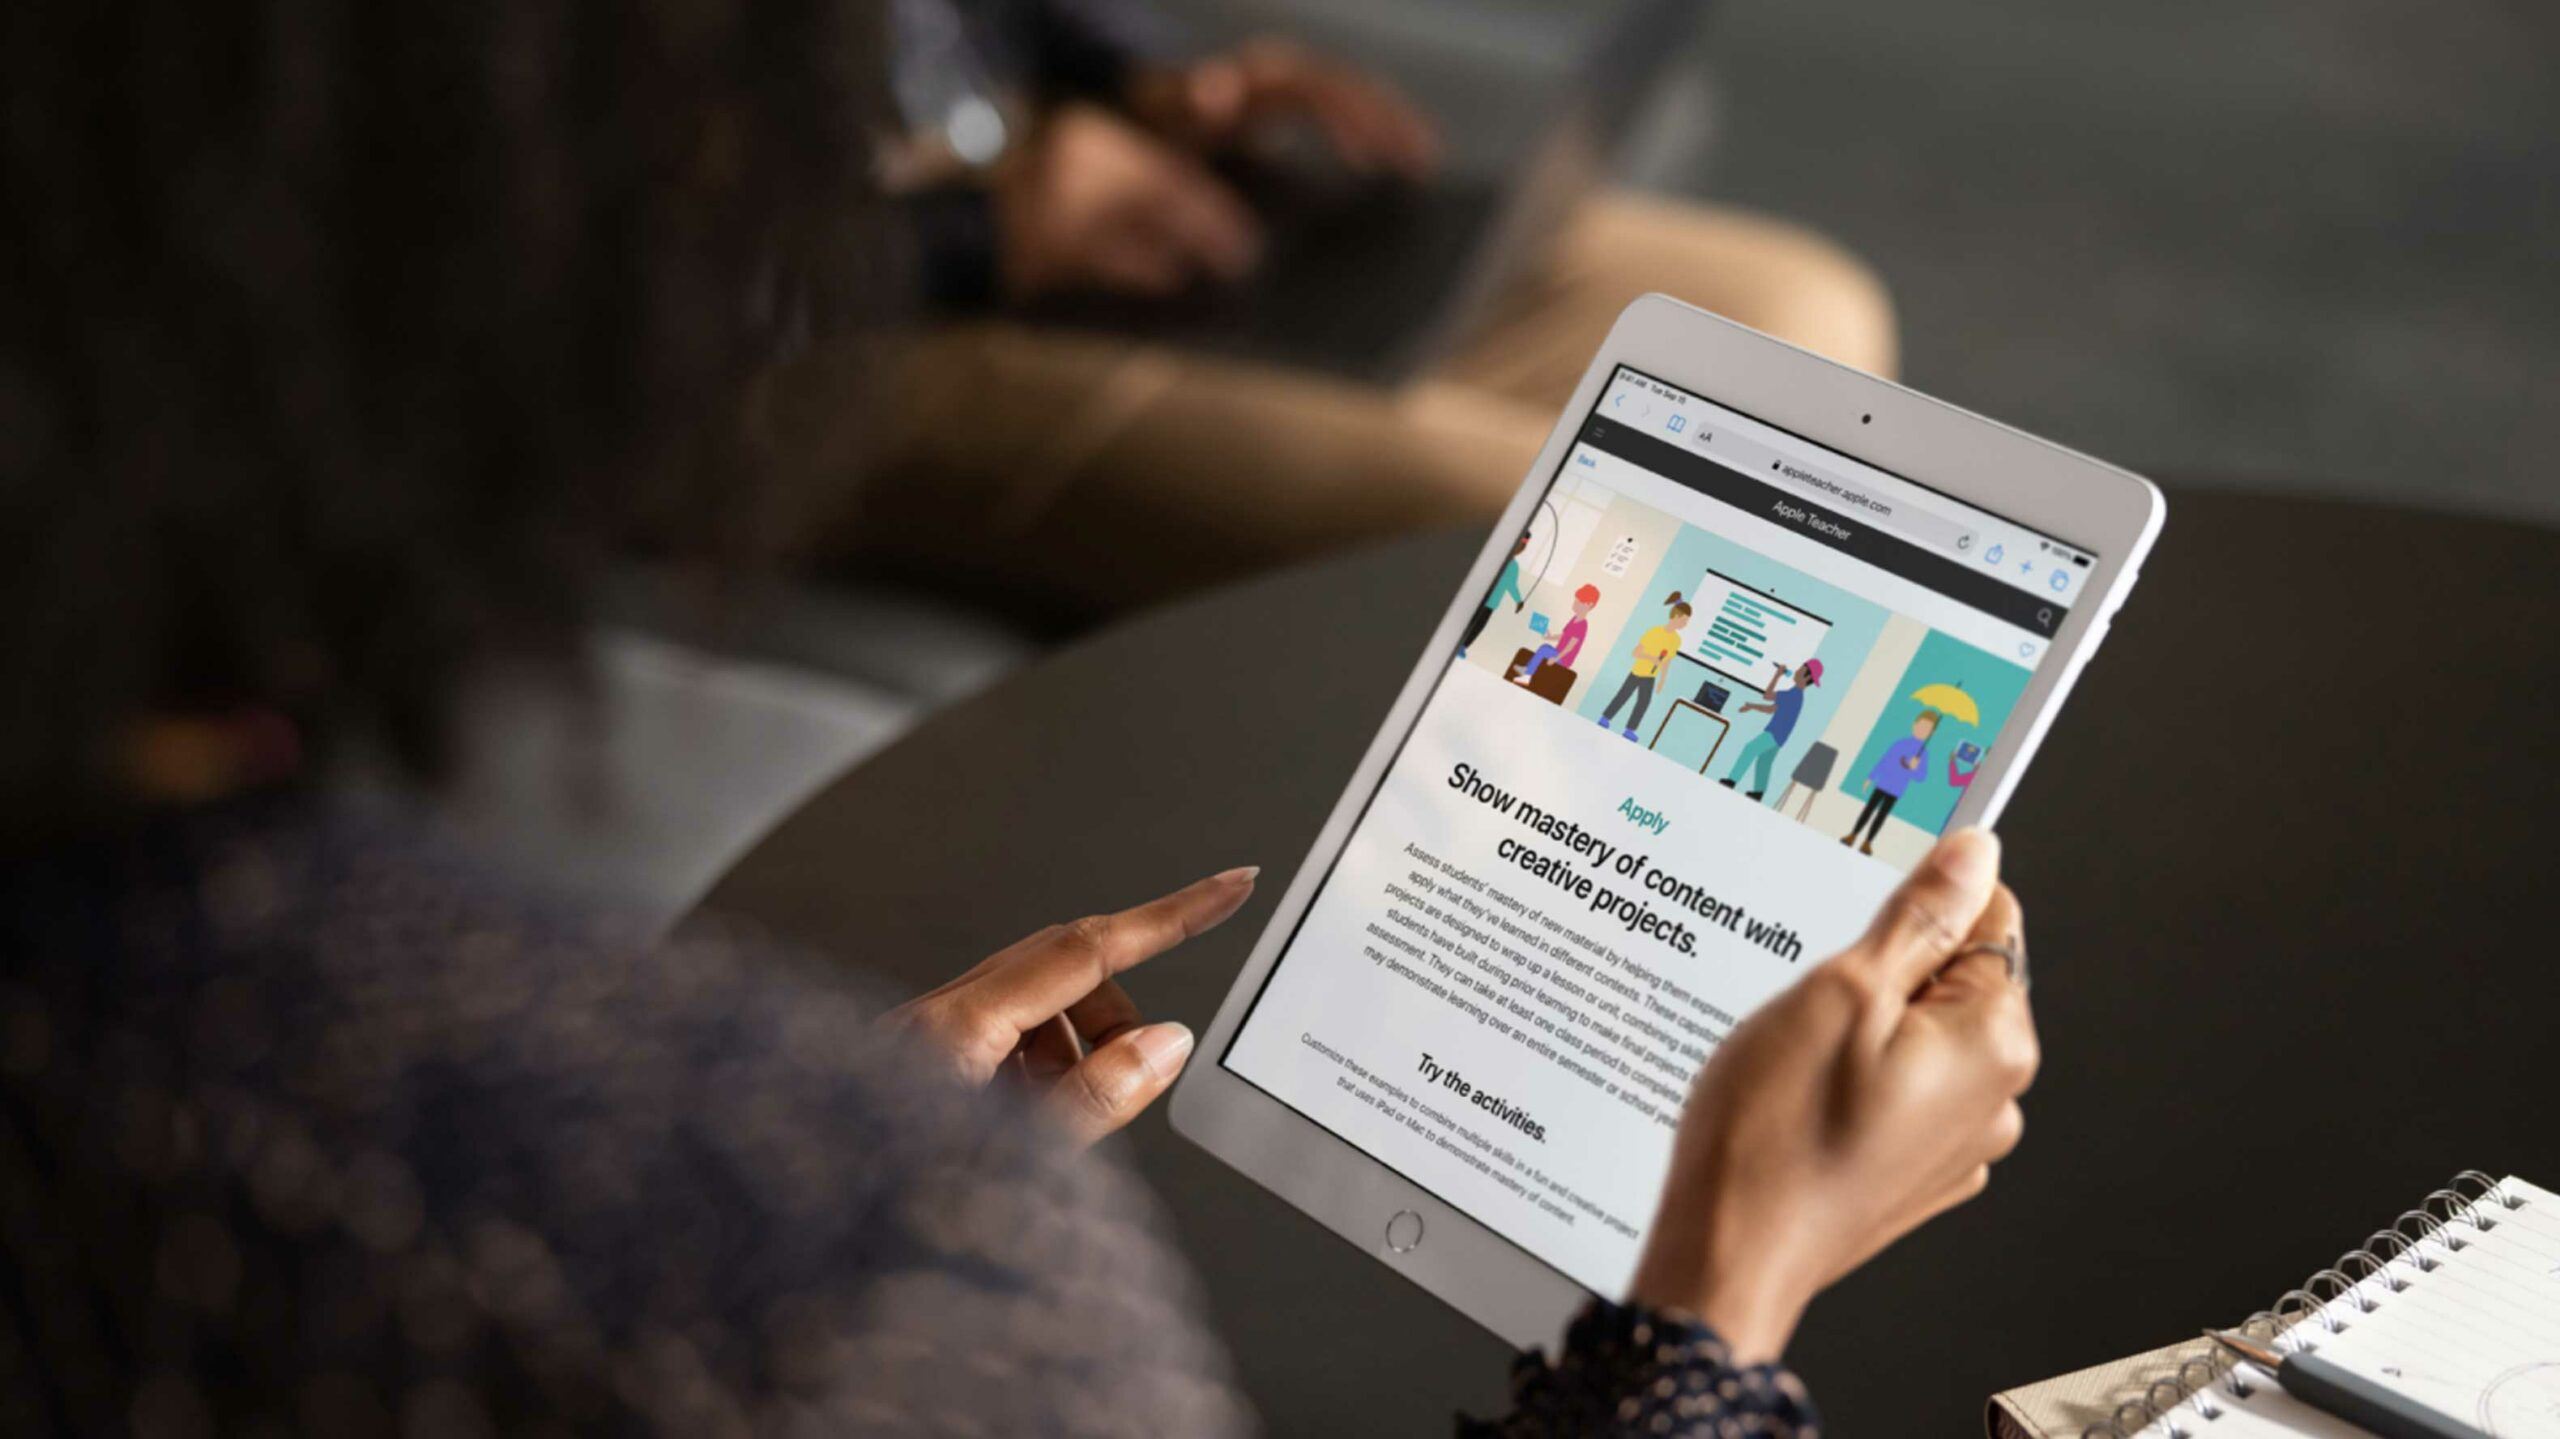 Apple's new education content on an iPad